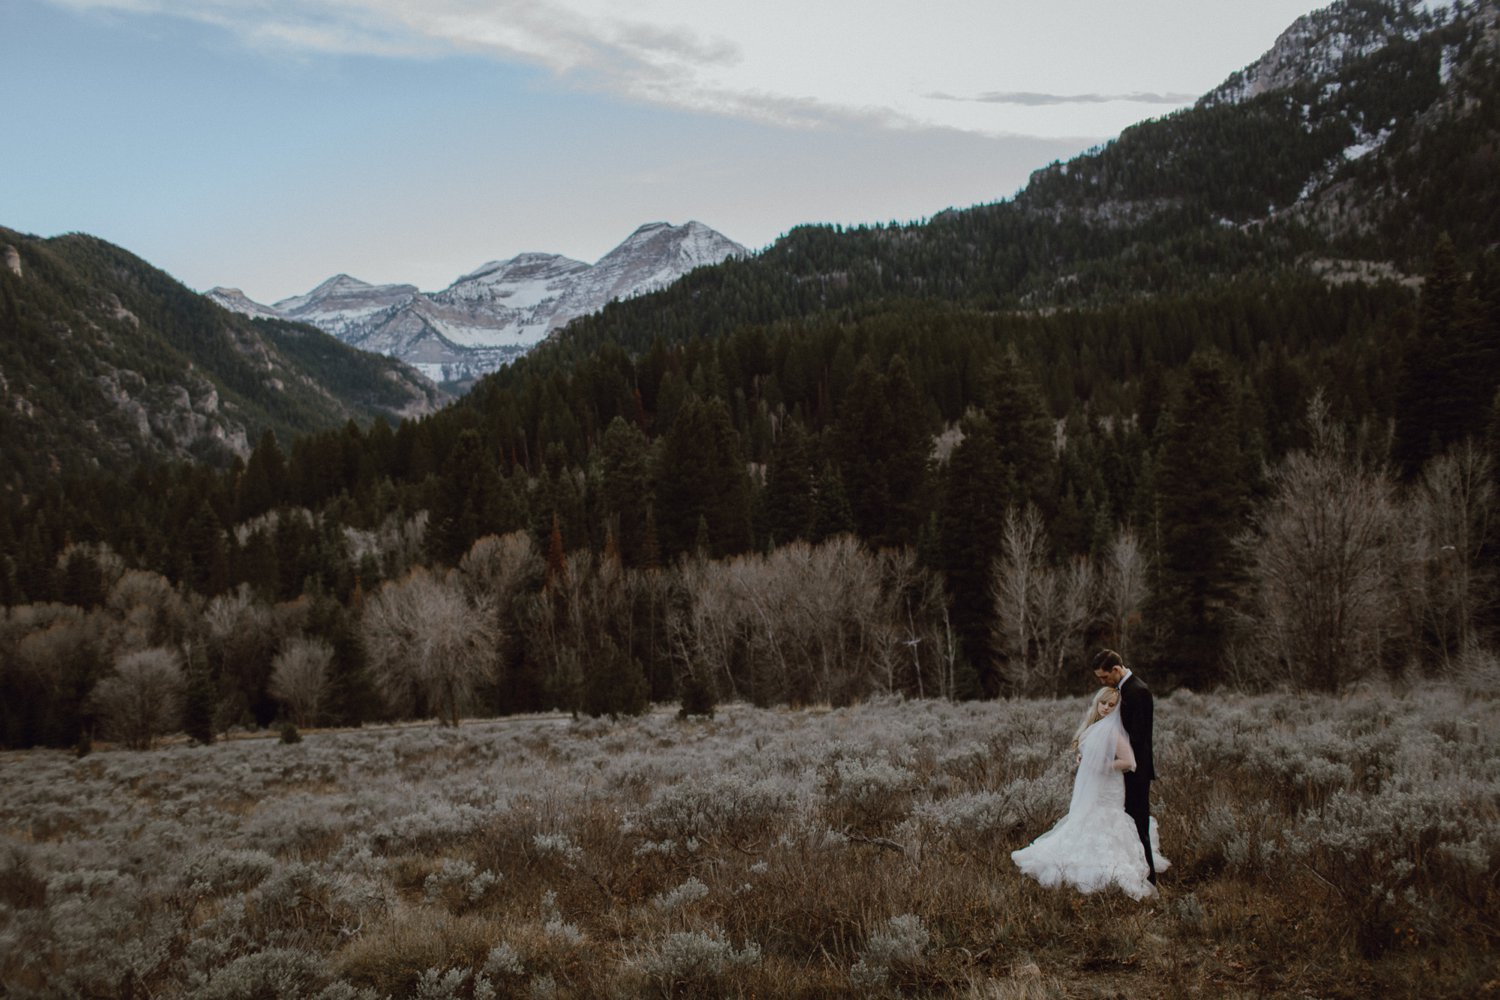 Adventurous wedding photography in a canyon